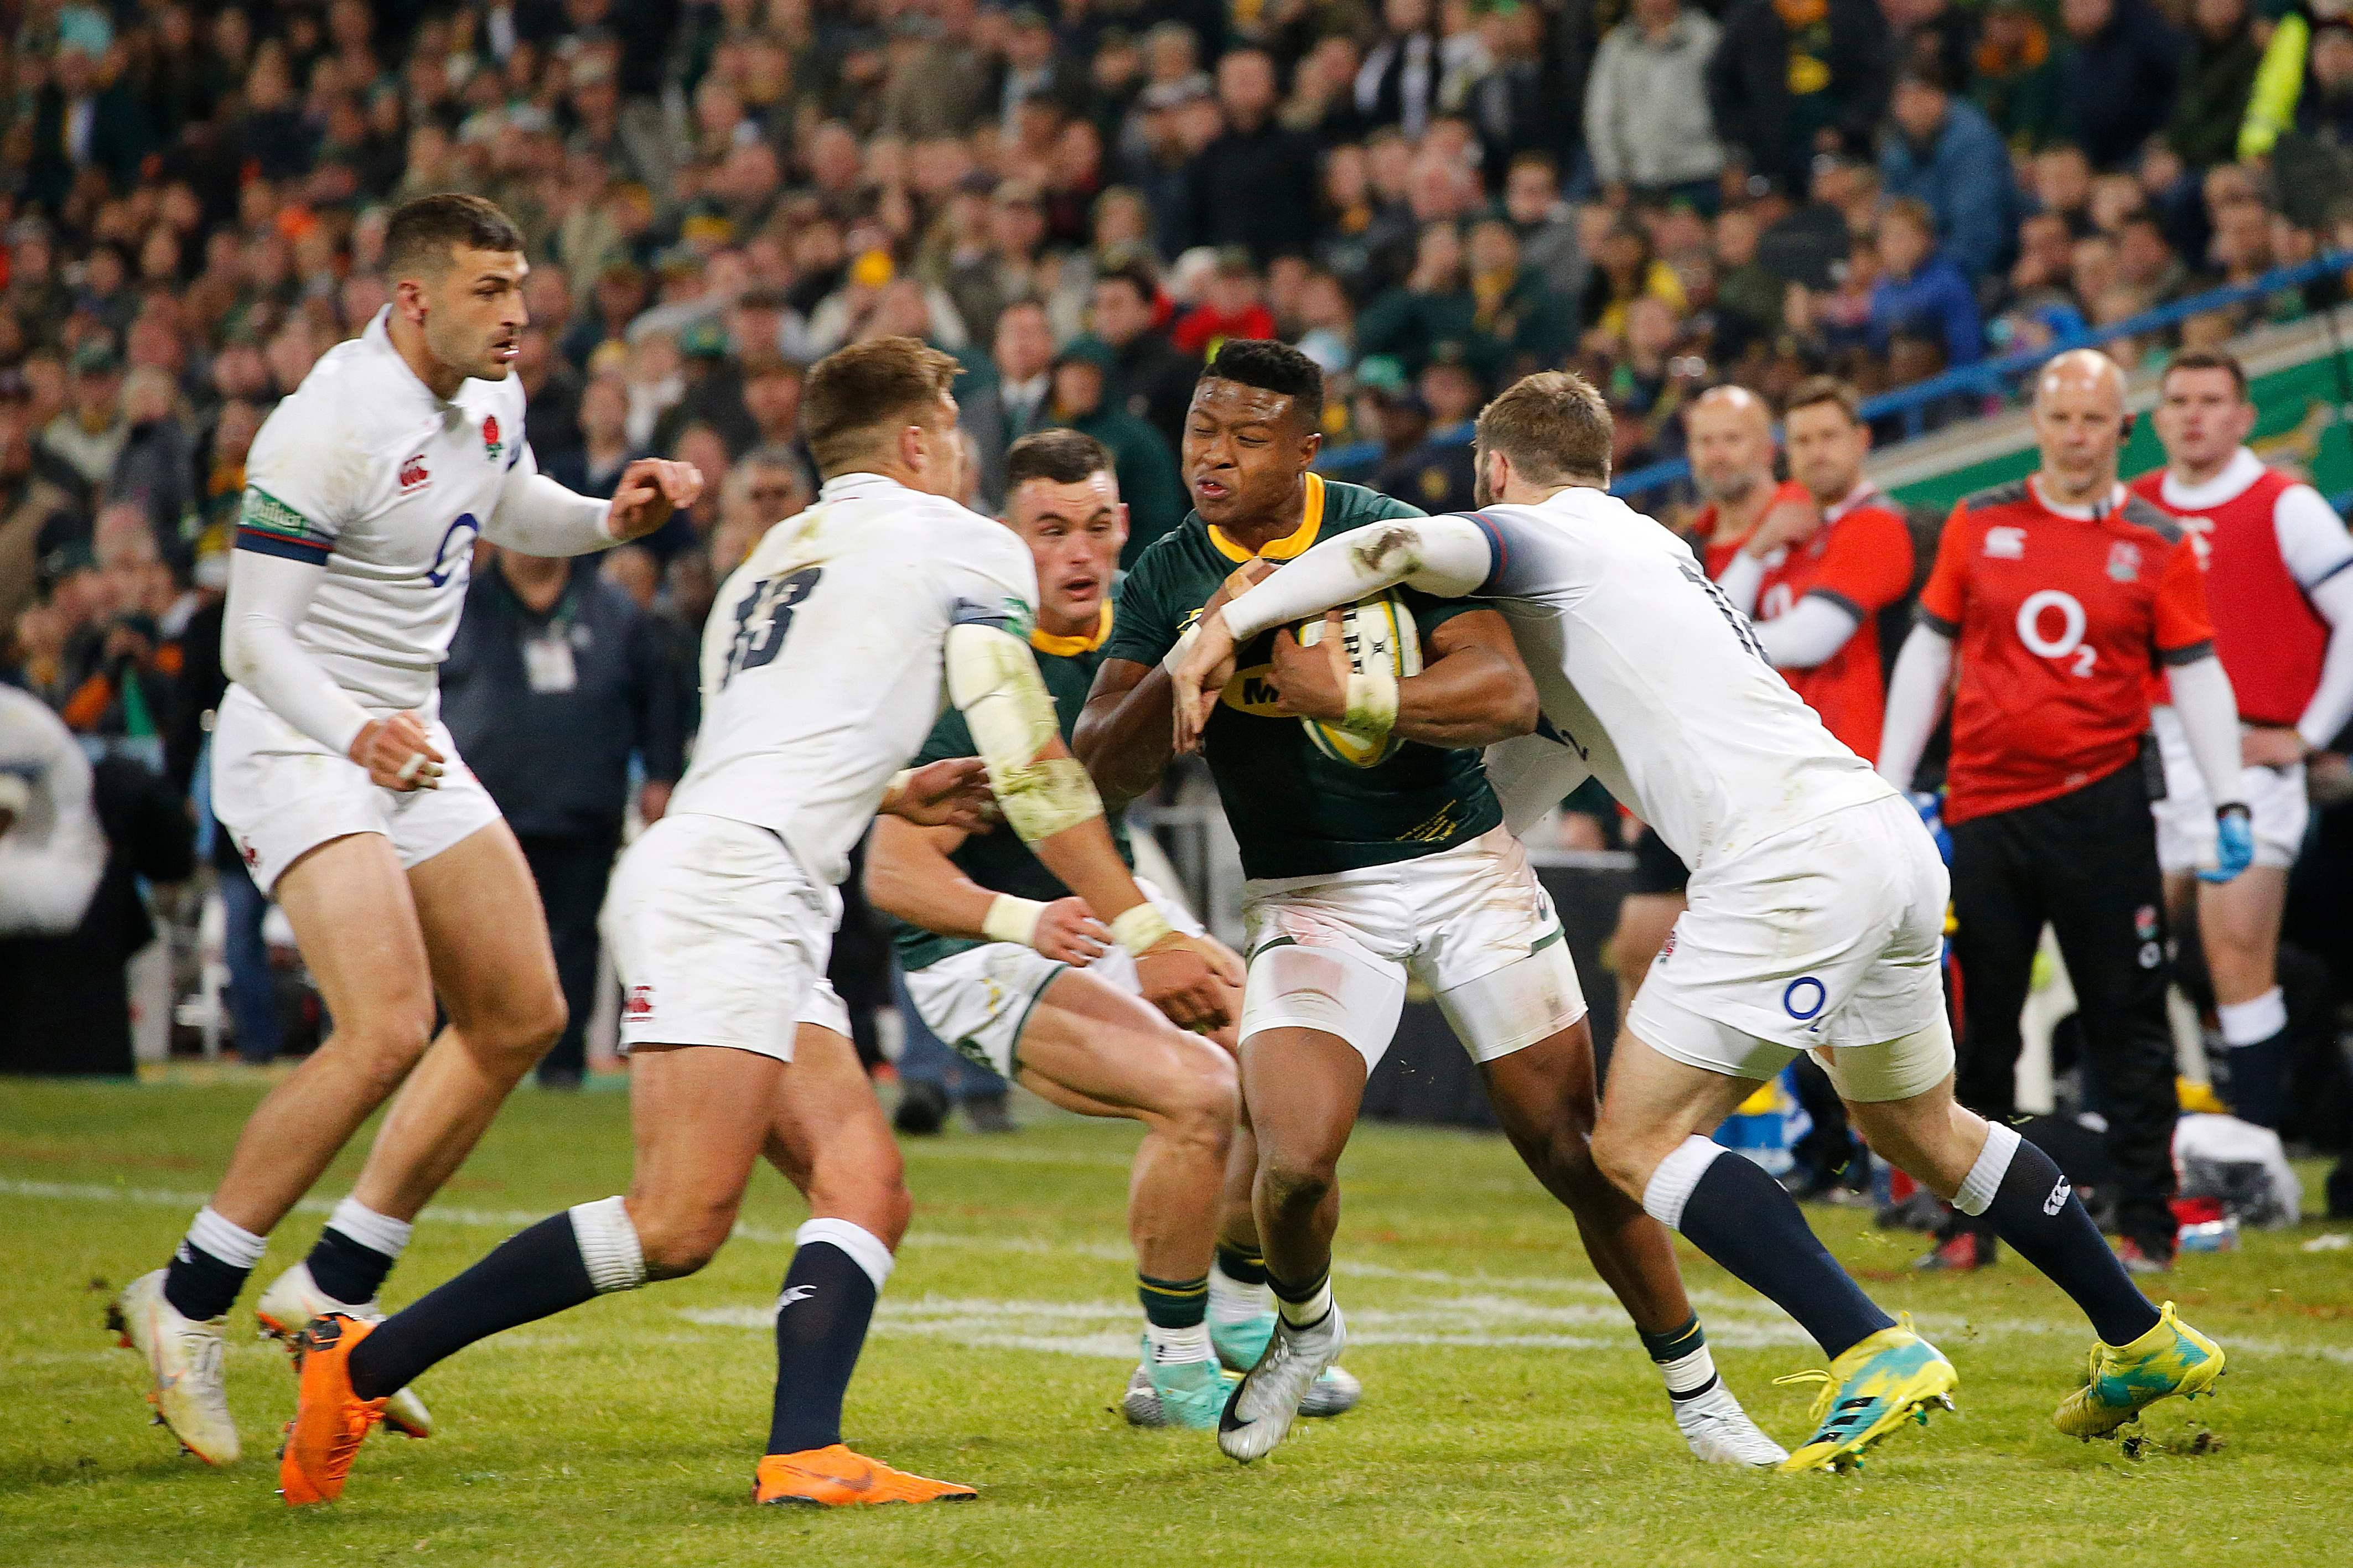 South Africa came back to run out 23-12 winners